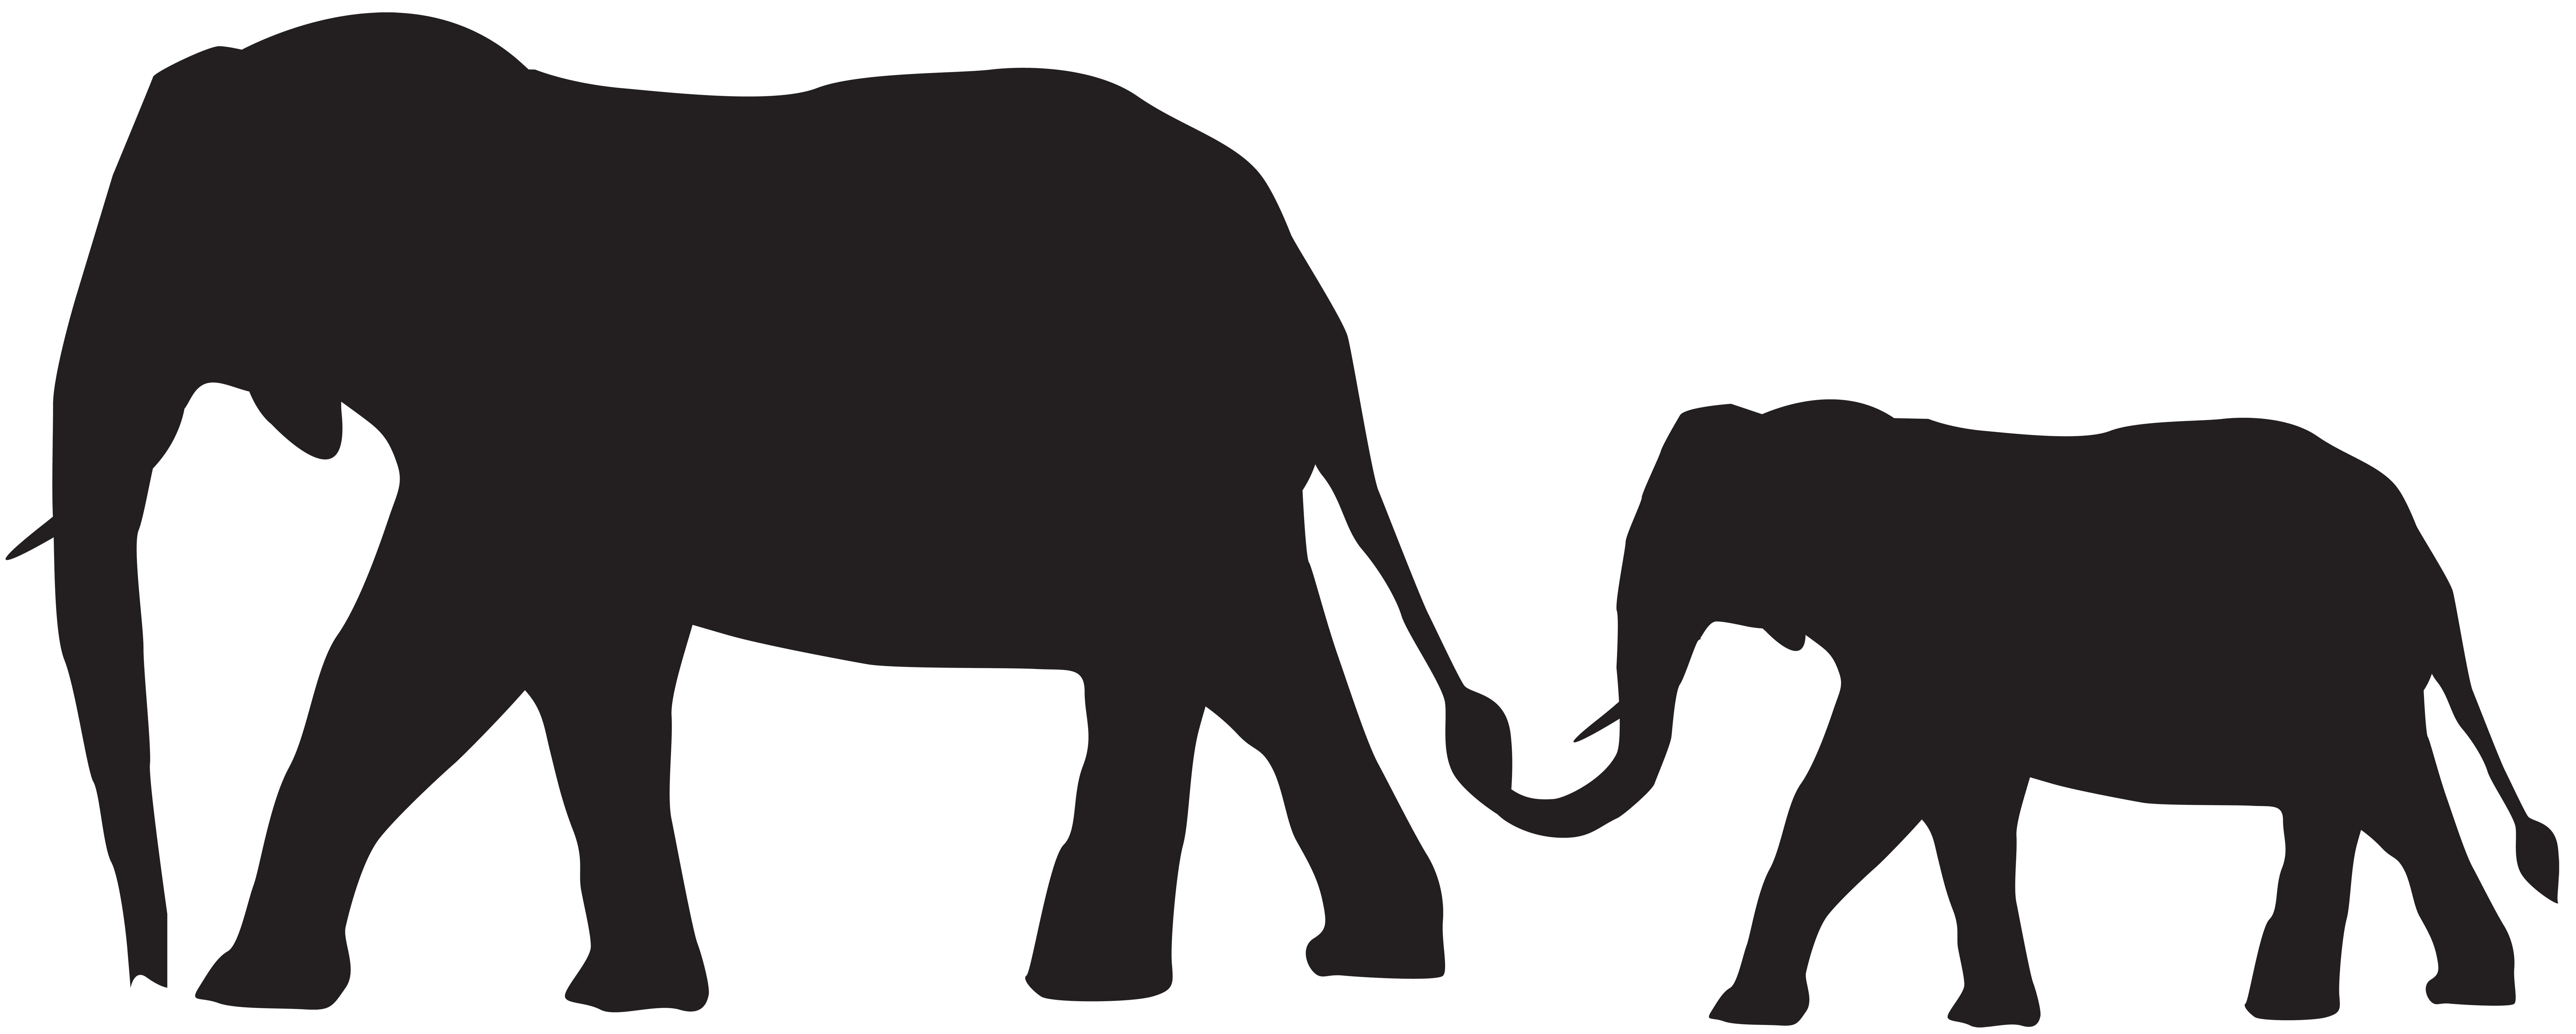 Mama baby elephant clipart png stock Mom And Baby Elephant Silhouette at GetDrawings.com | Free for ... png stock